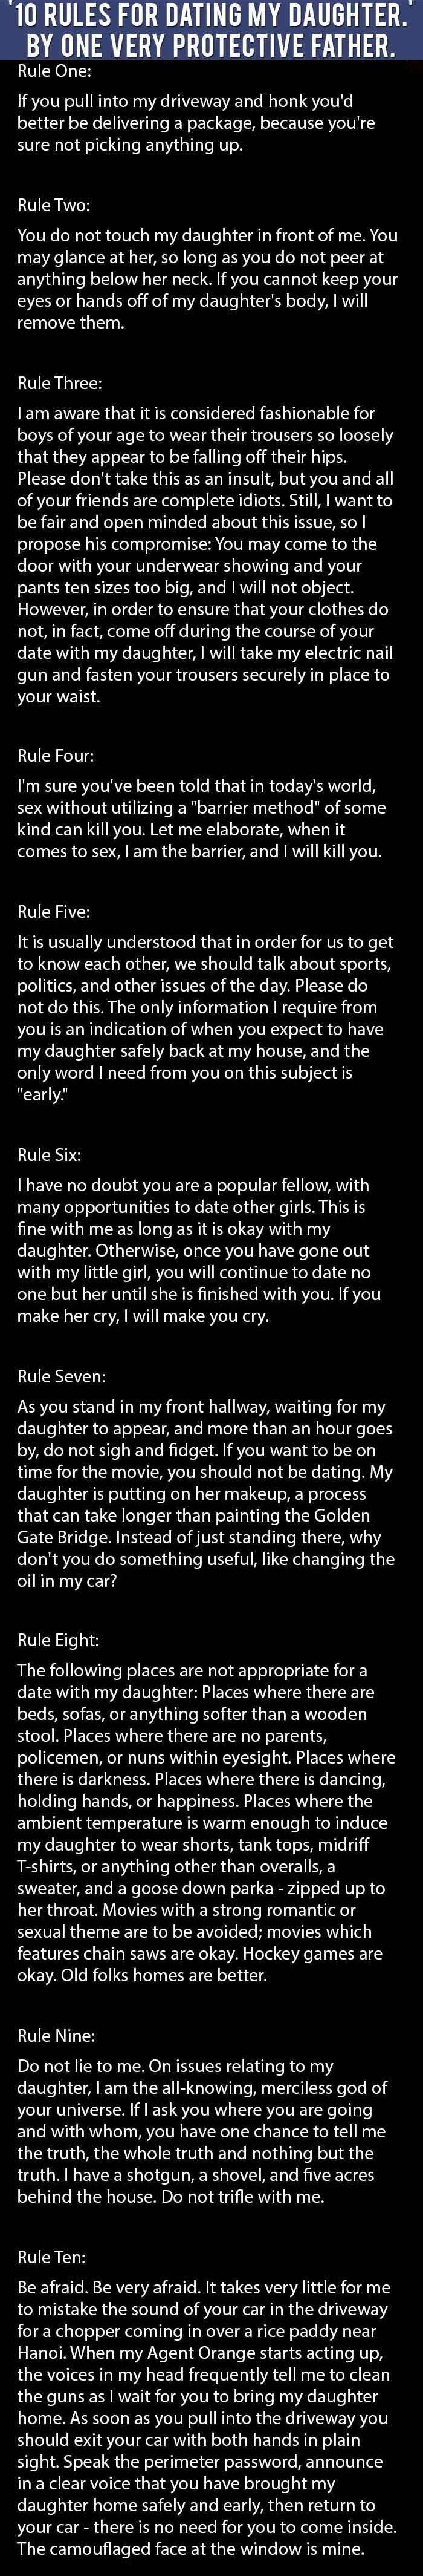 Rules for online dating joke images